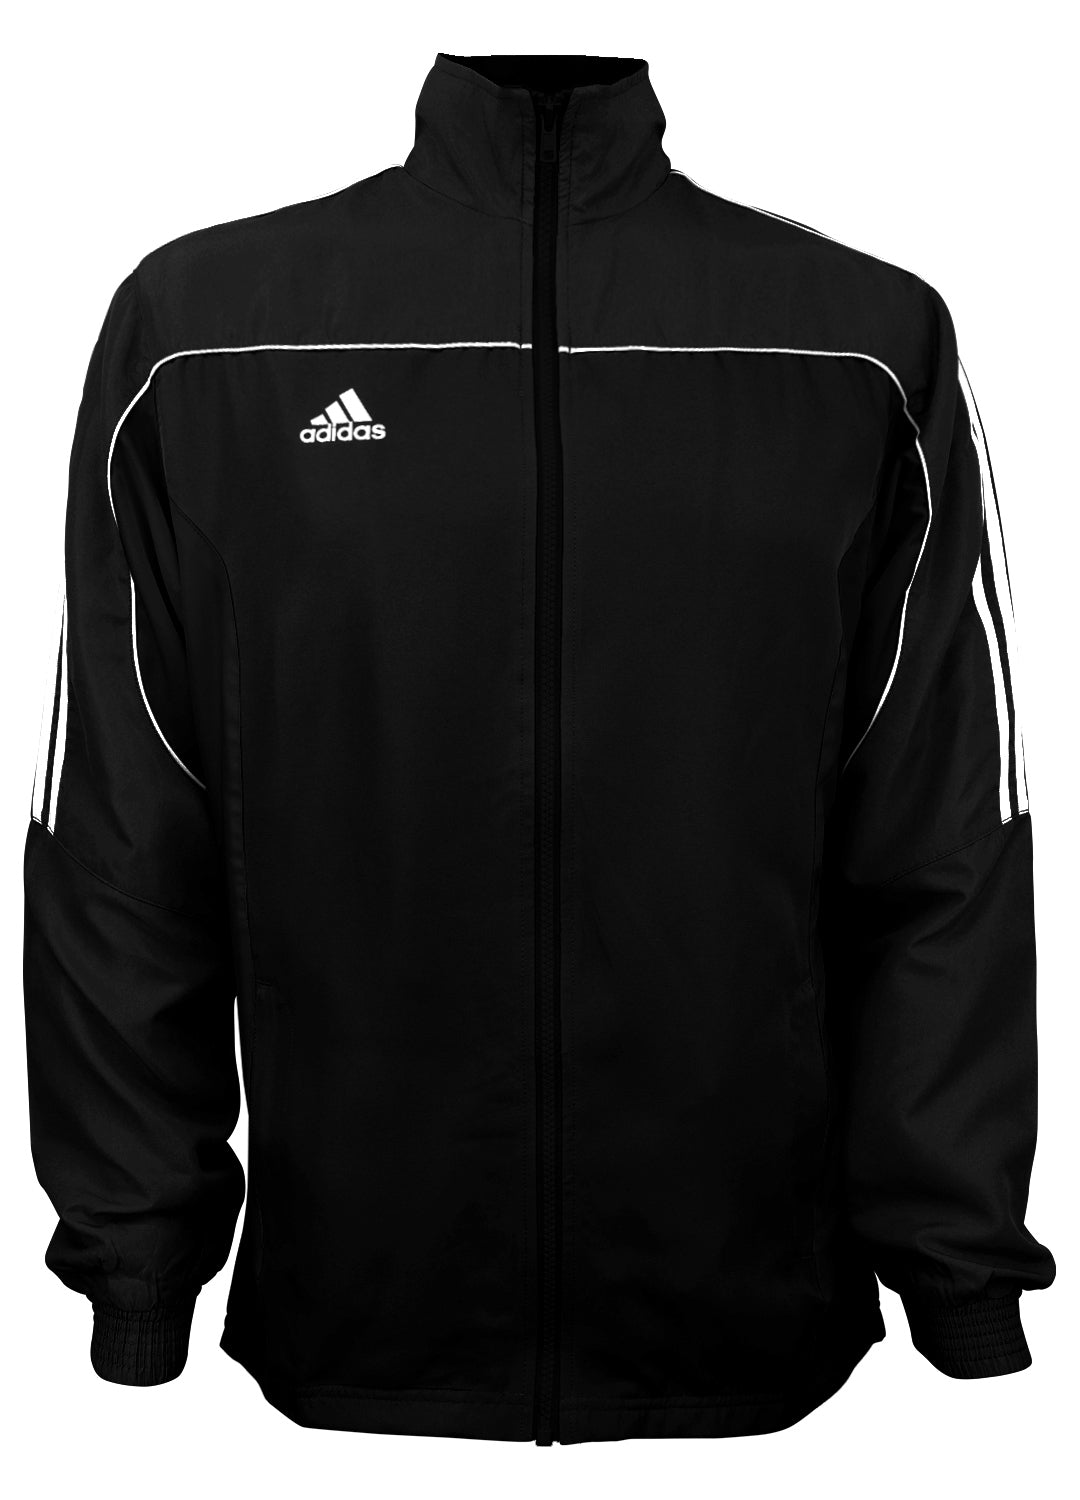 adidas Black with White Stripes Windbreaker Style Team Jacket Front View